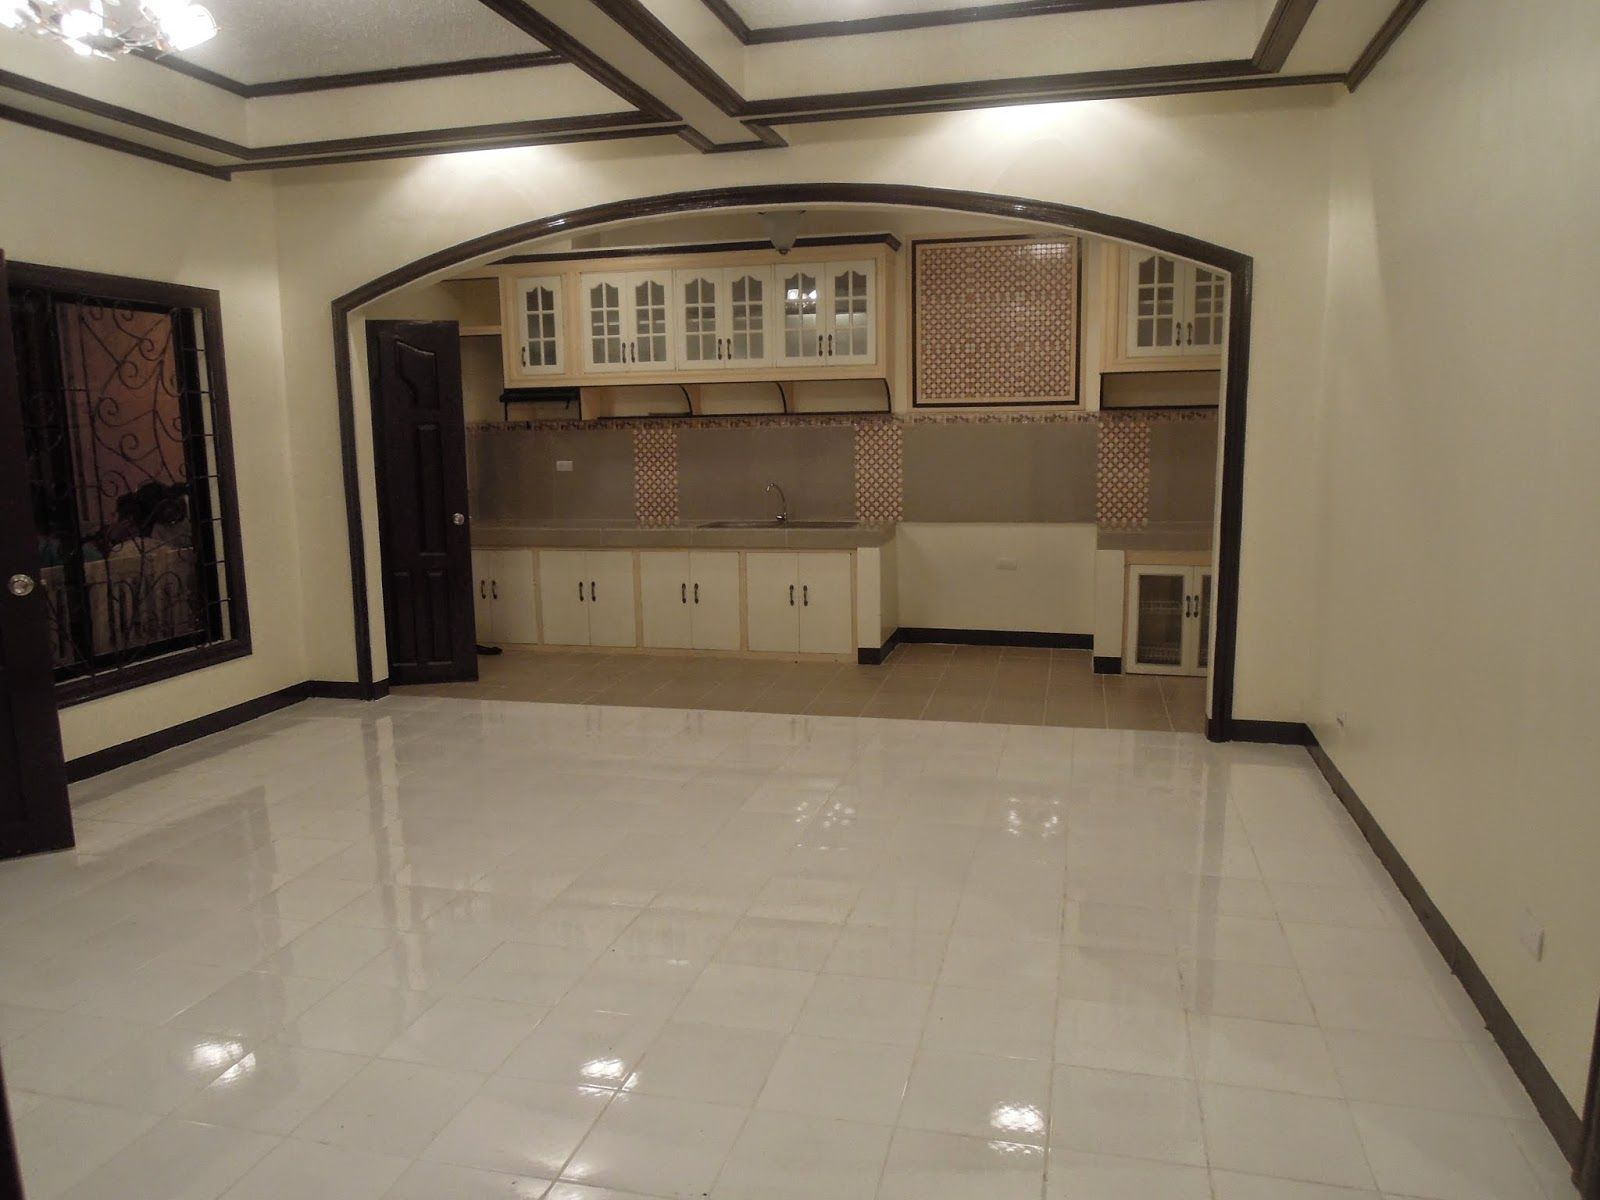 Fully Furnished Apartments Near Me For Rent homedecor,